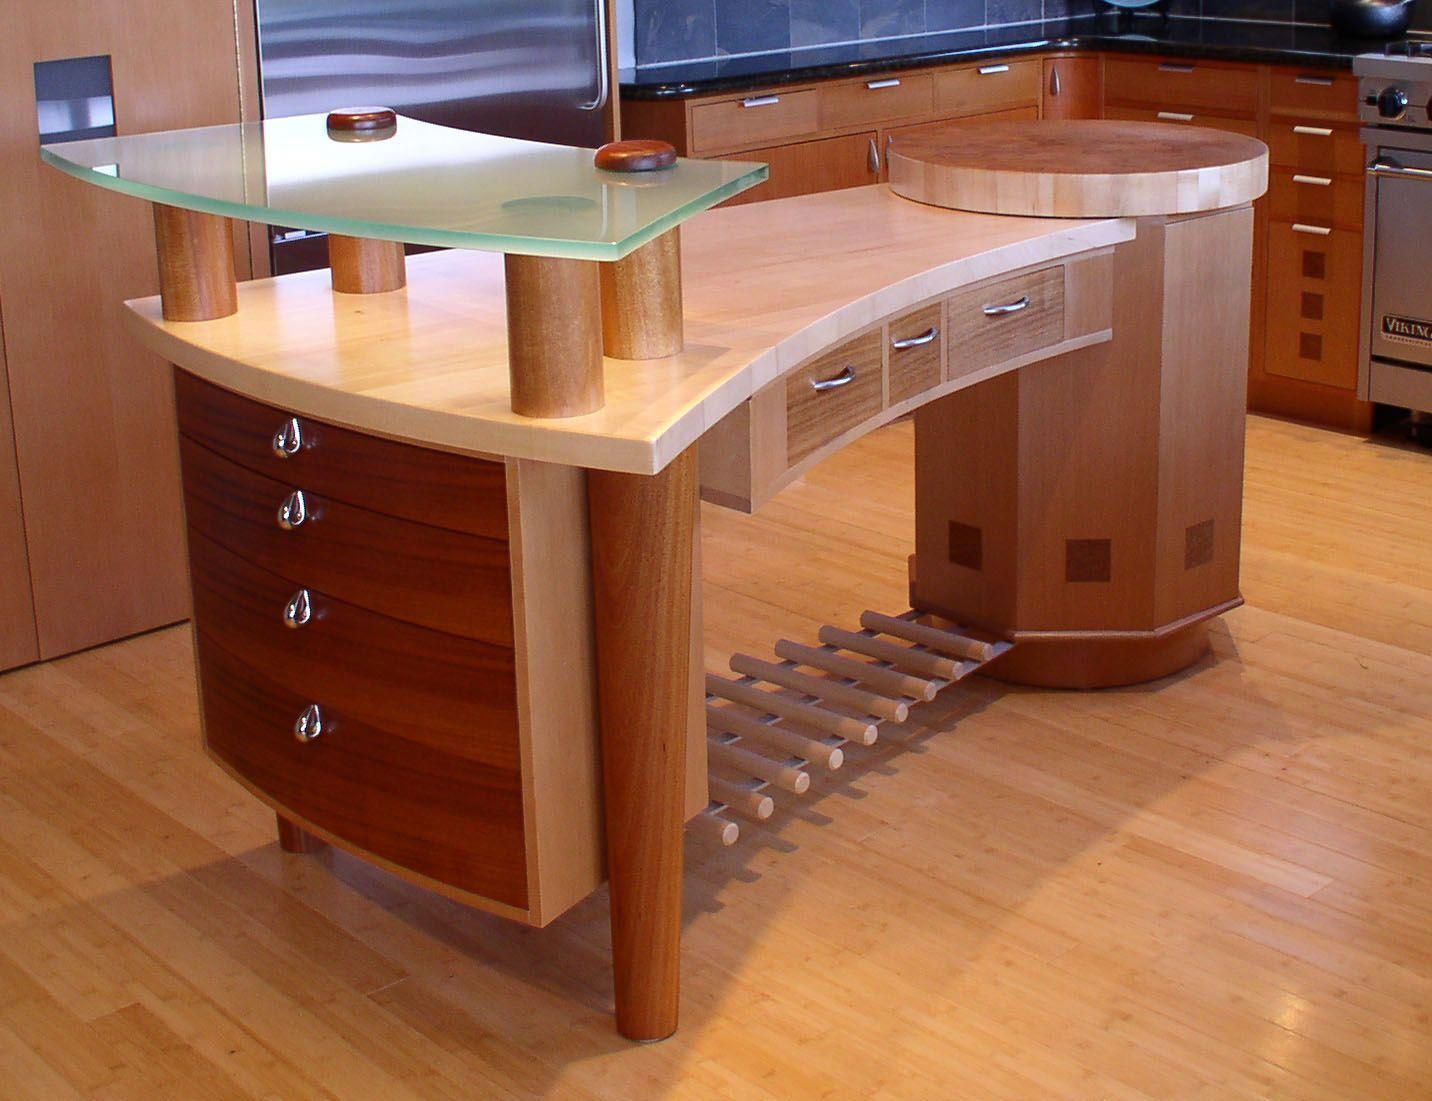 Woodworkers Table Designs Michael Singer Fine Woodworking Offers